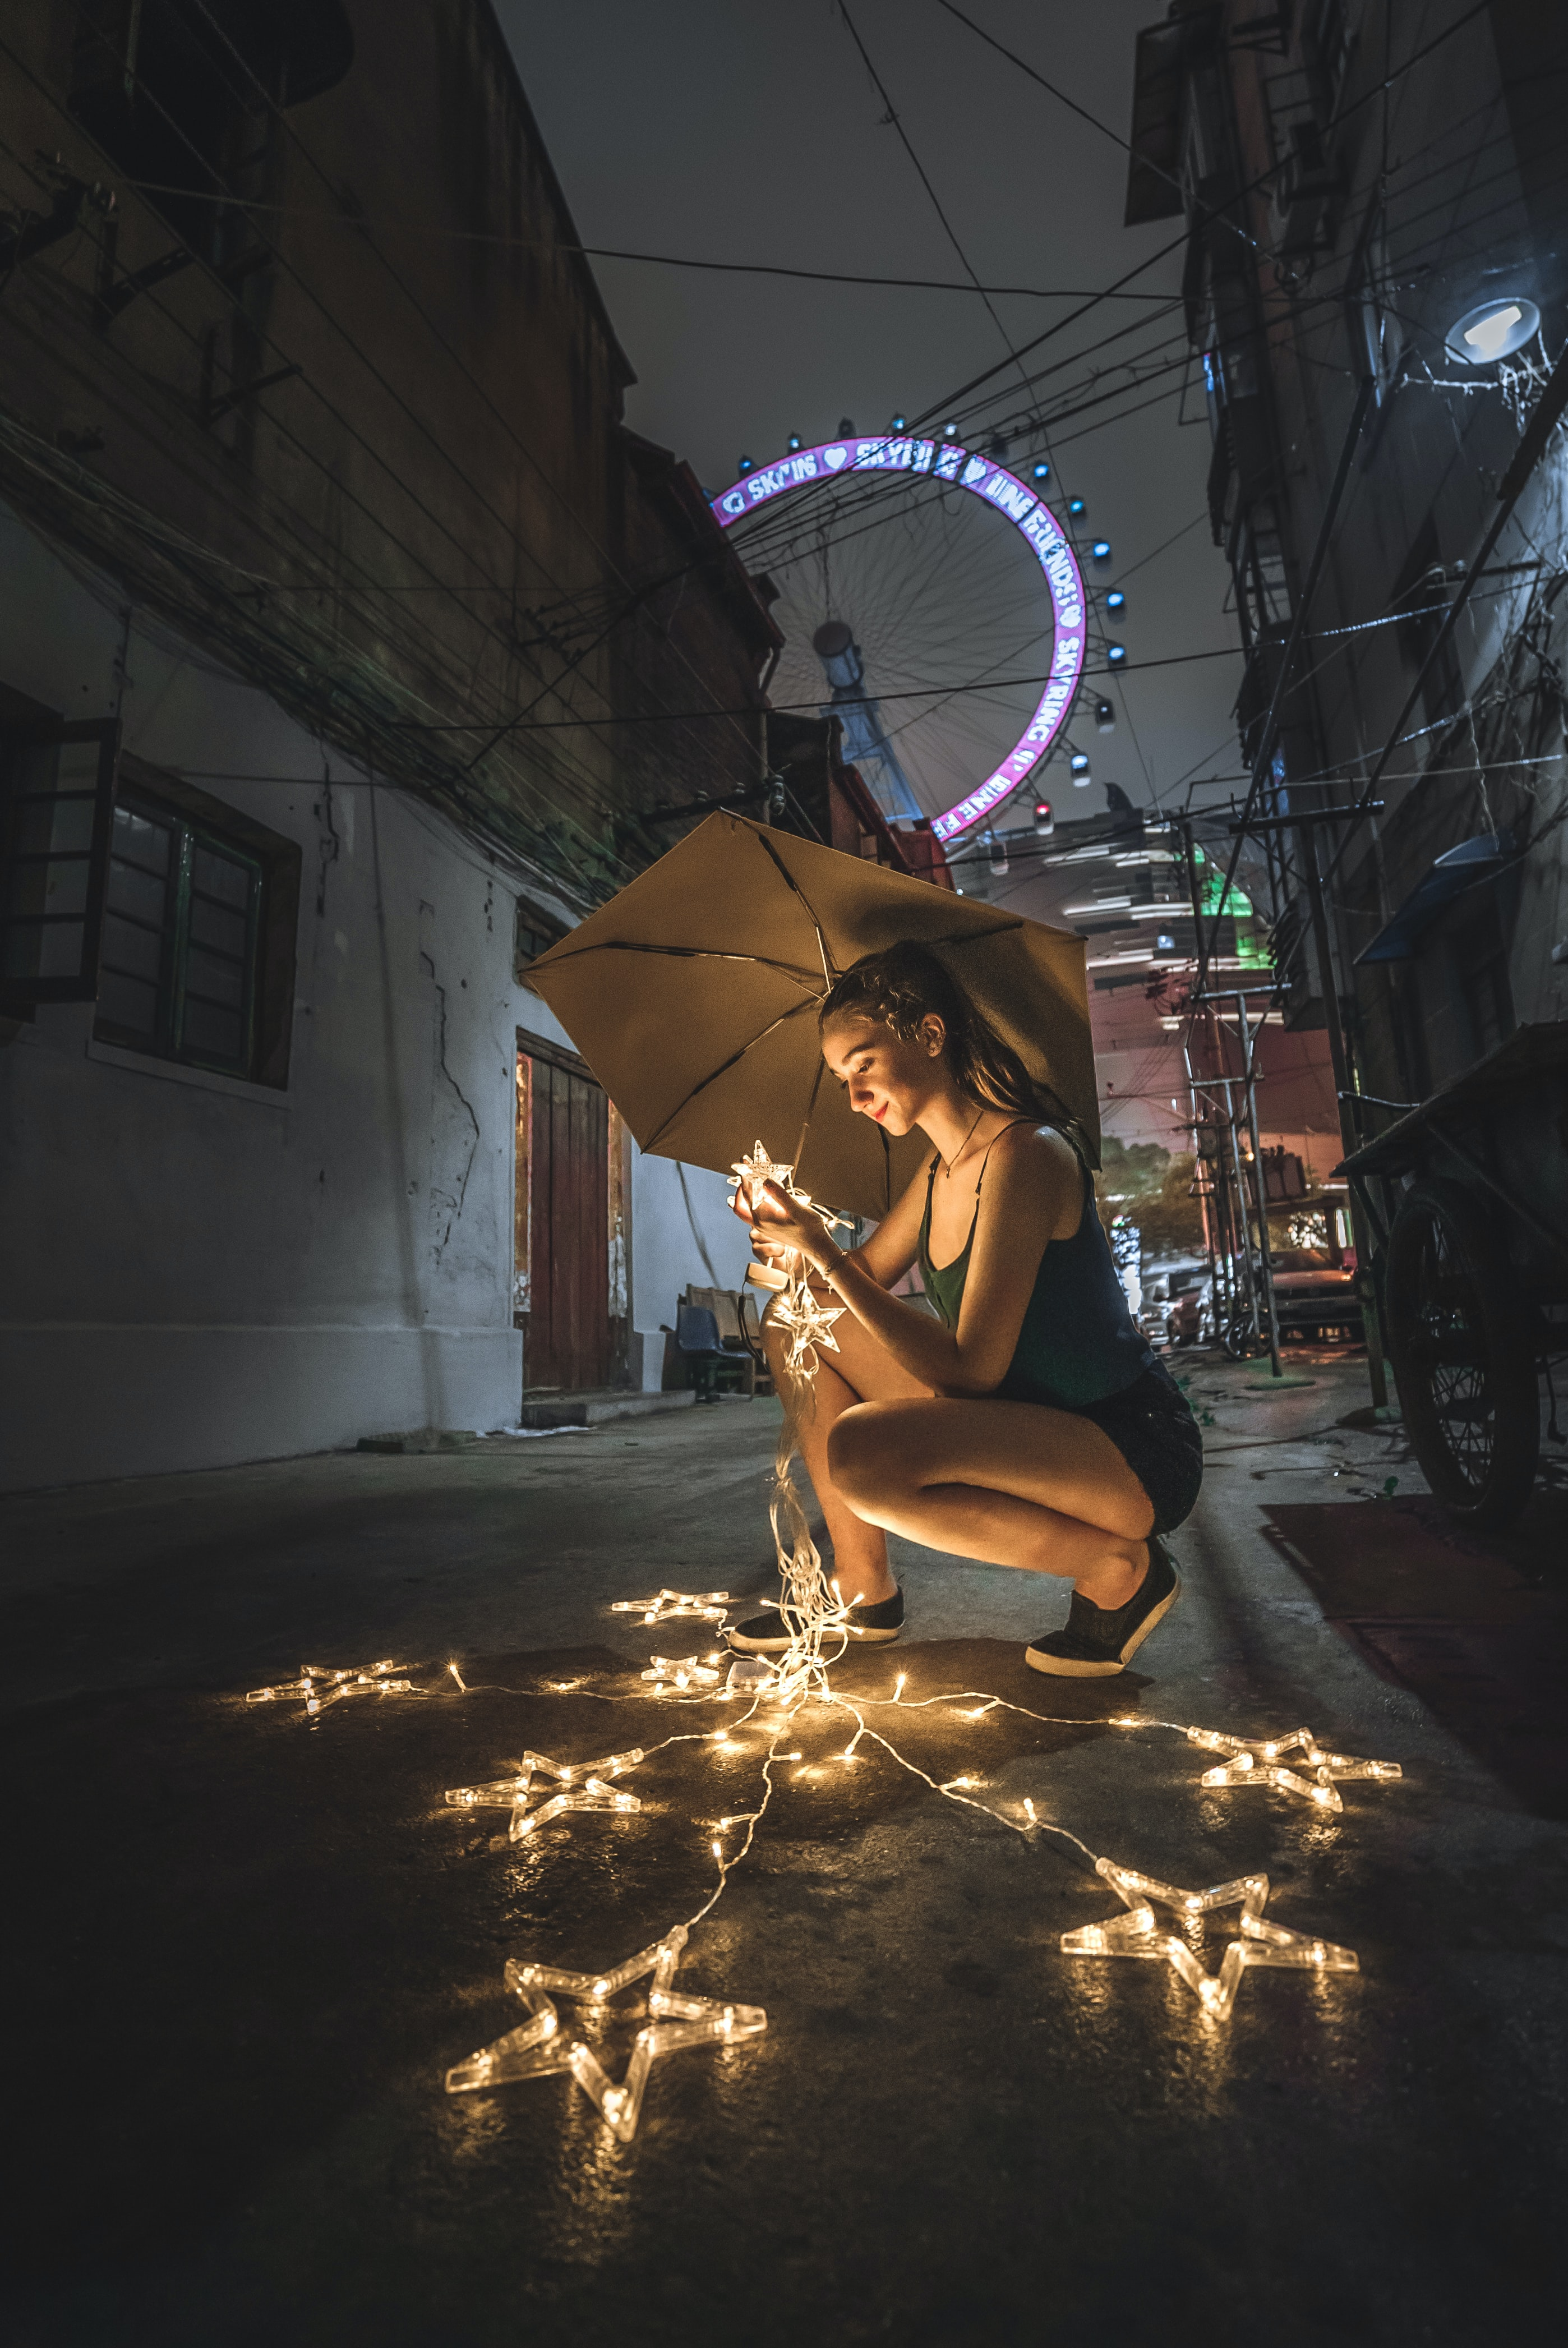 woman holding umbrella and string lights during nighttime